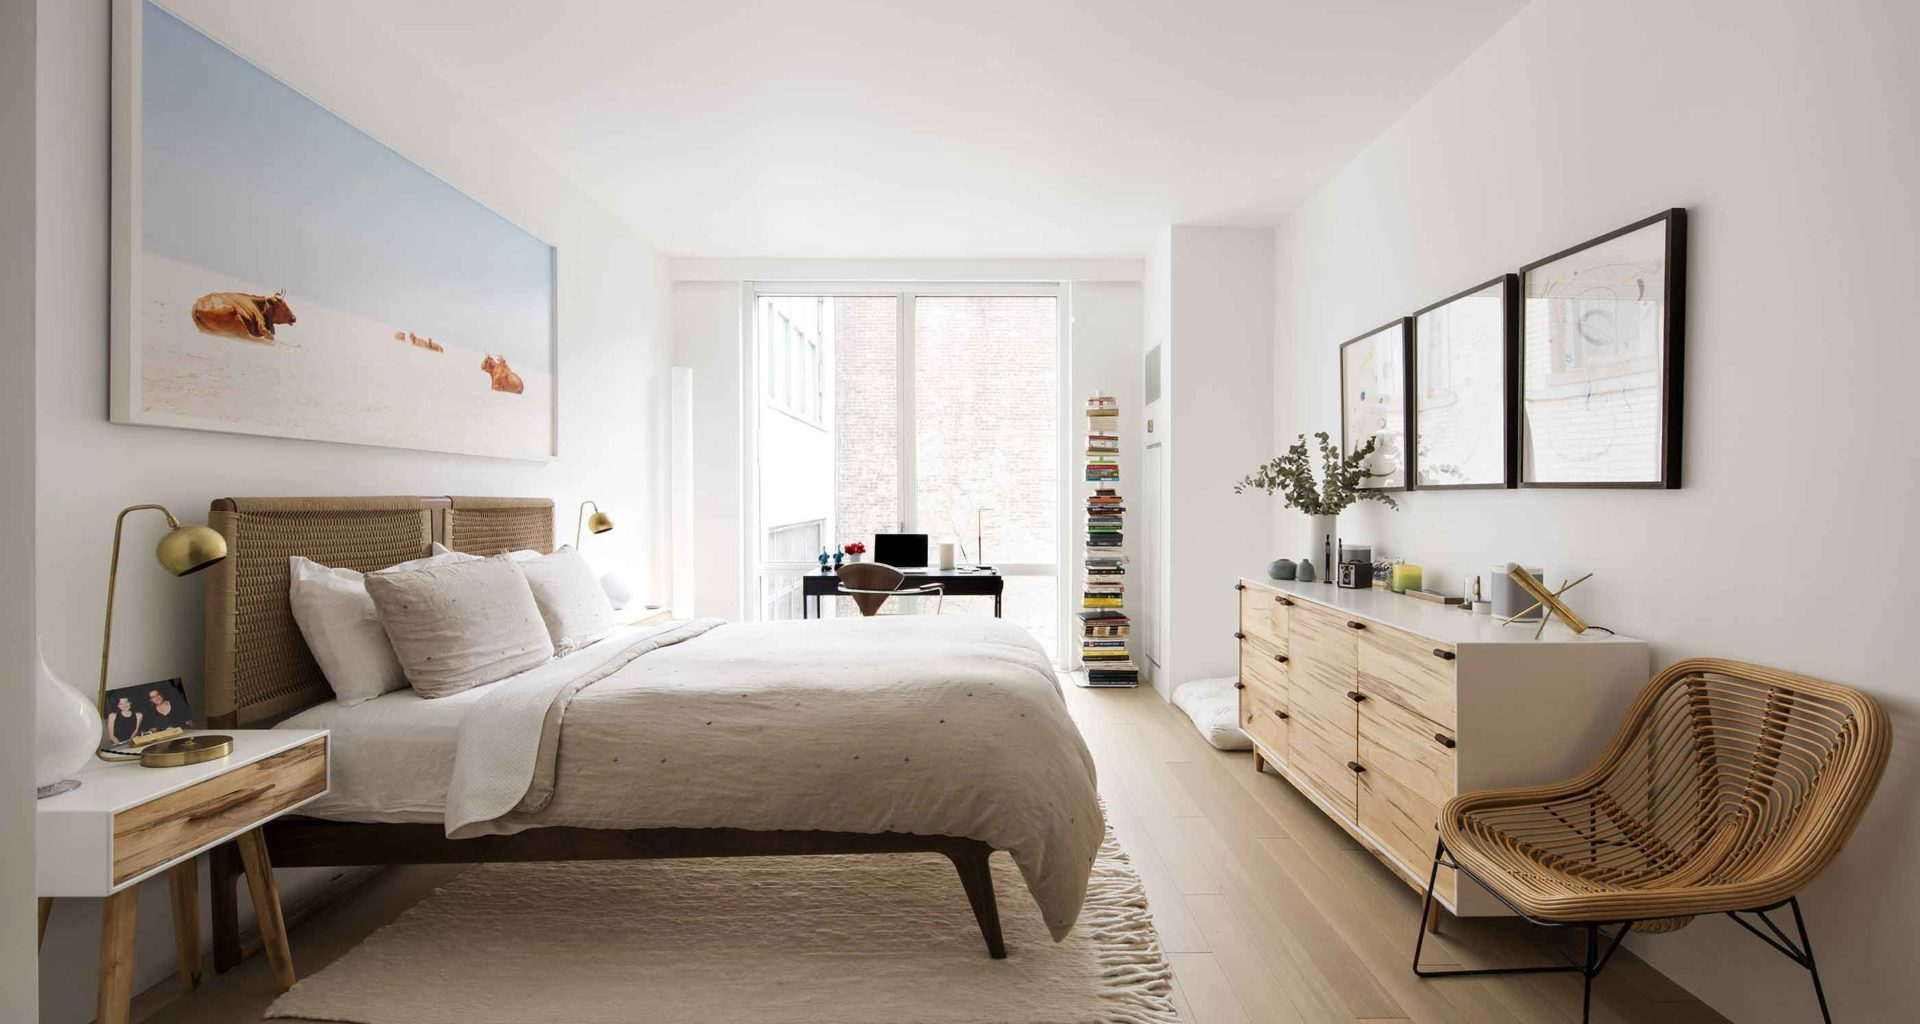 Home Design Bedroom Urban Modern Bedroom Ideas For Your Home